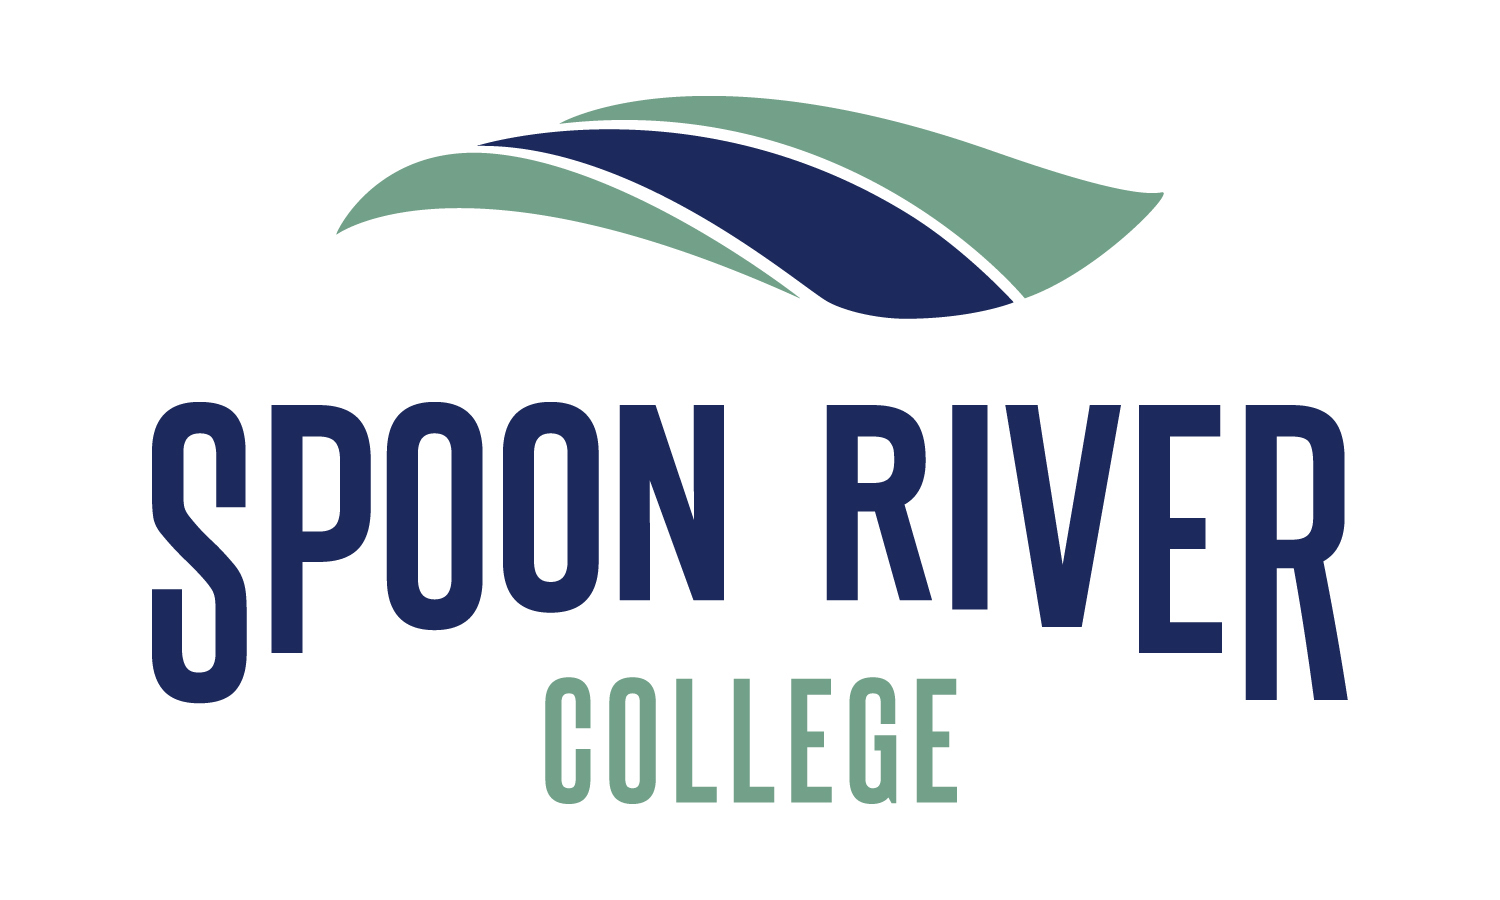 Creative Arts - Personal Development - Courses - Spoon River College Community Outreach